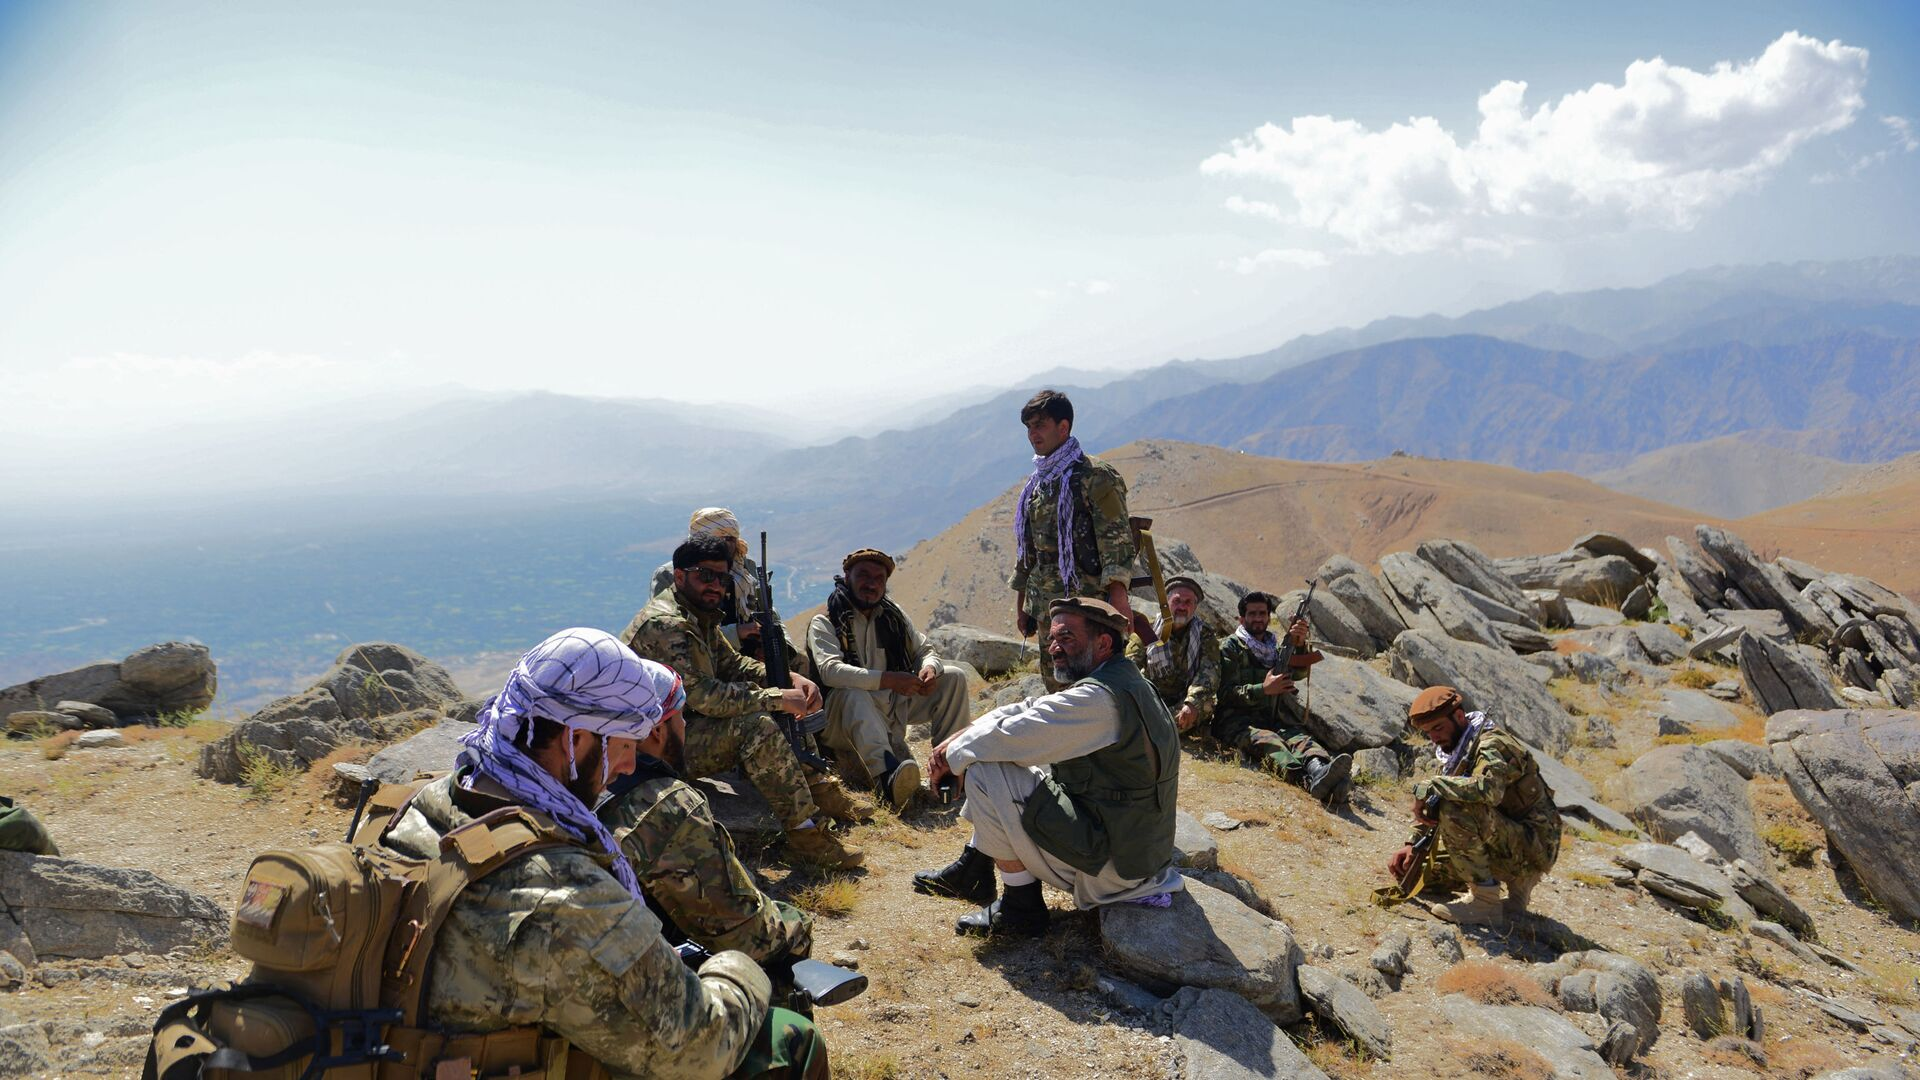 In this file photo taken on September 1, 2021, Afghan resistance movement and anti-Taliban uprising forces take rest as they patrol on a hilltop in Darband area in Anaba district of Panjshir province. - The Taliban said on September 6, 2021 the last pocket of resistance in Afghanistan, the Panjshir Valley, had been completely captured.  - Sputnik International, 1920, 06.09.2021